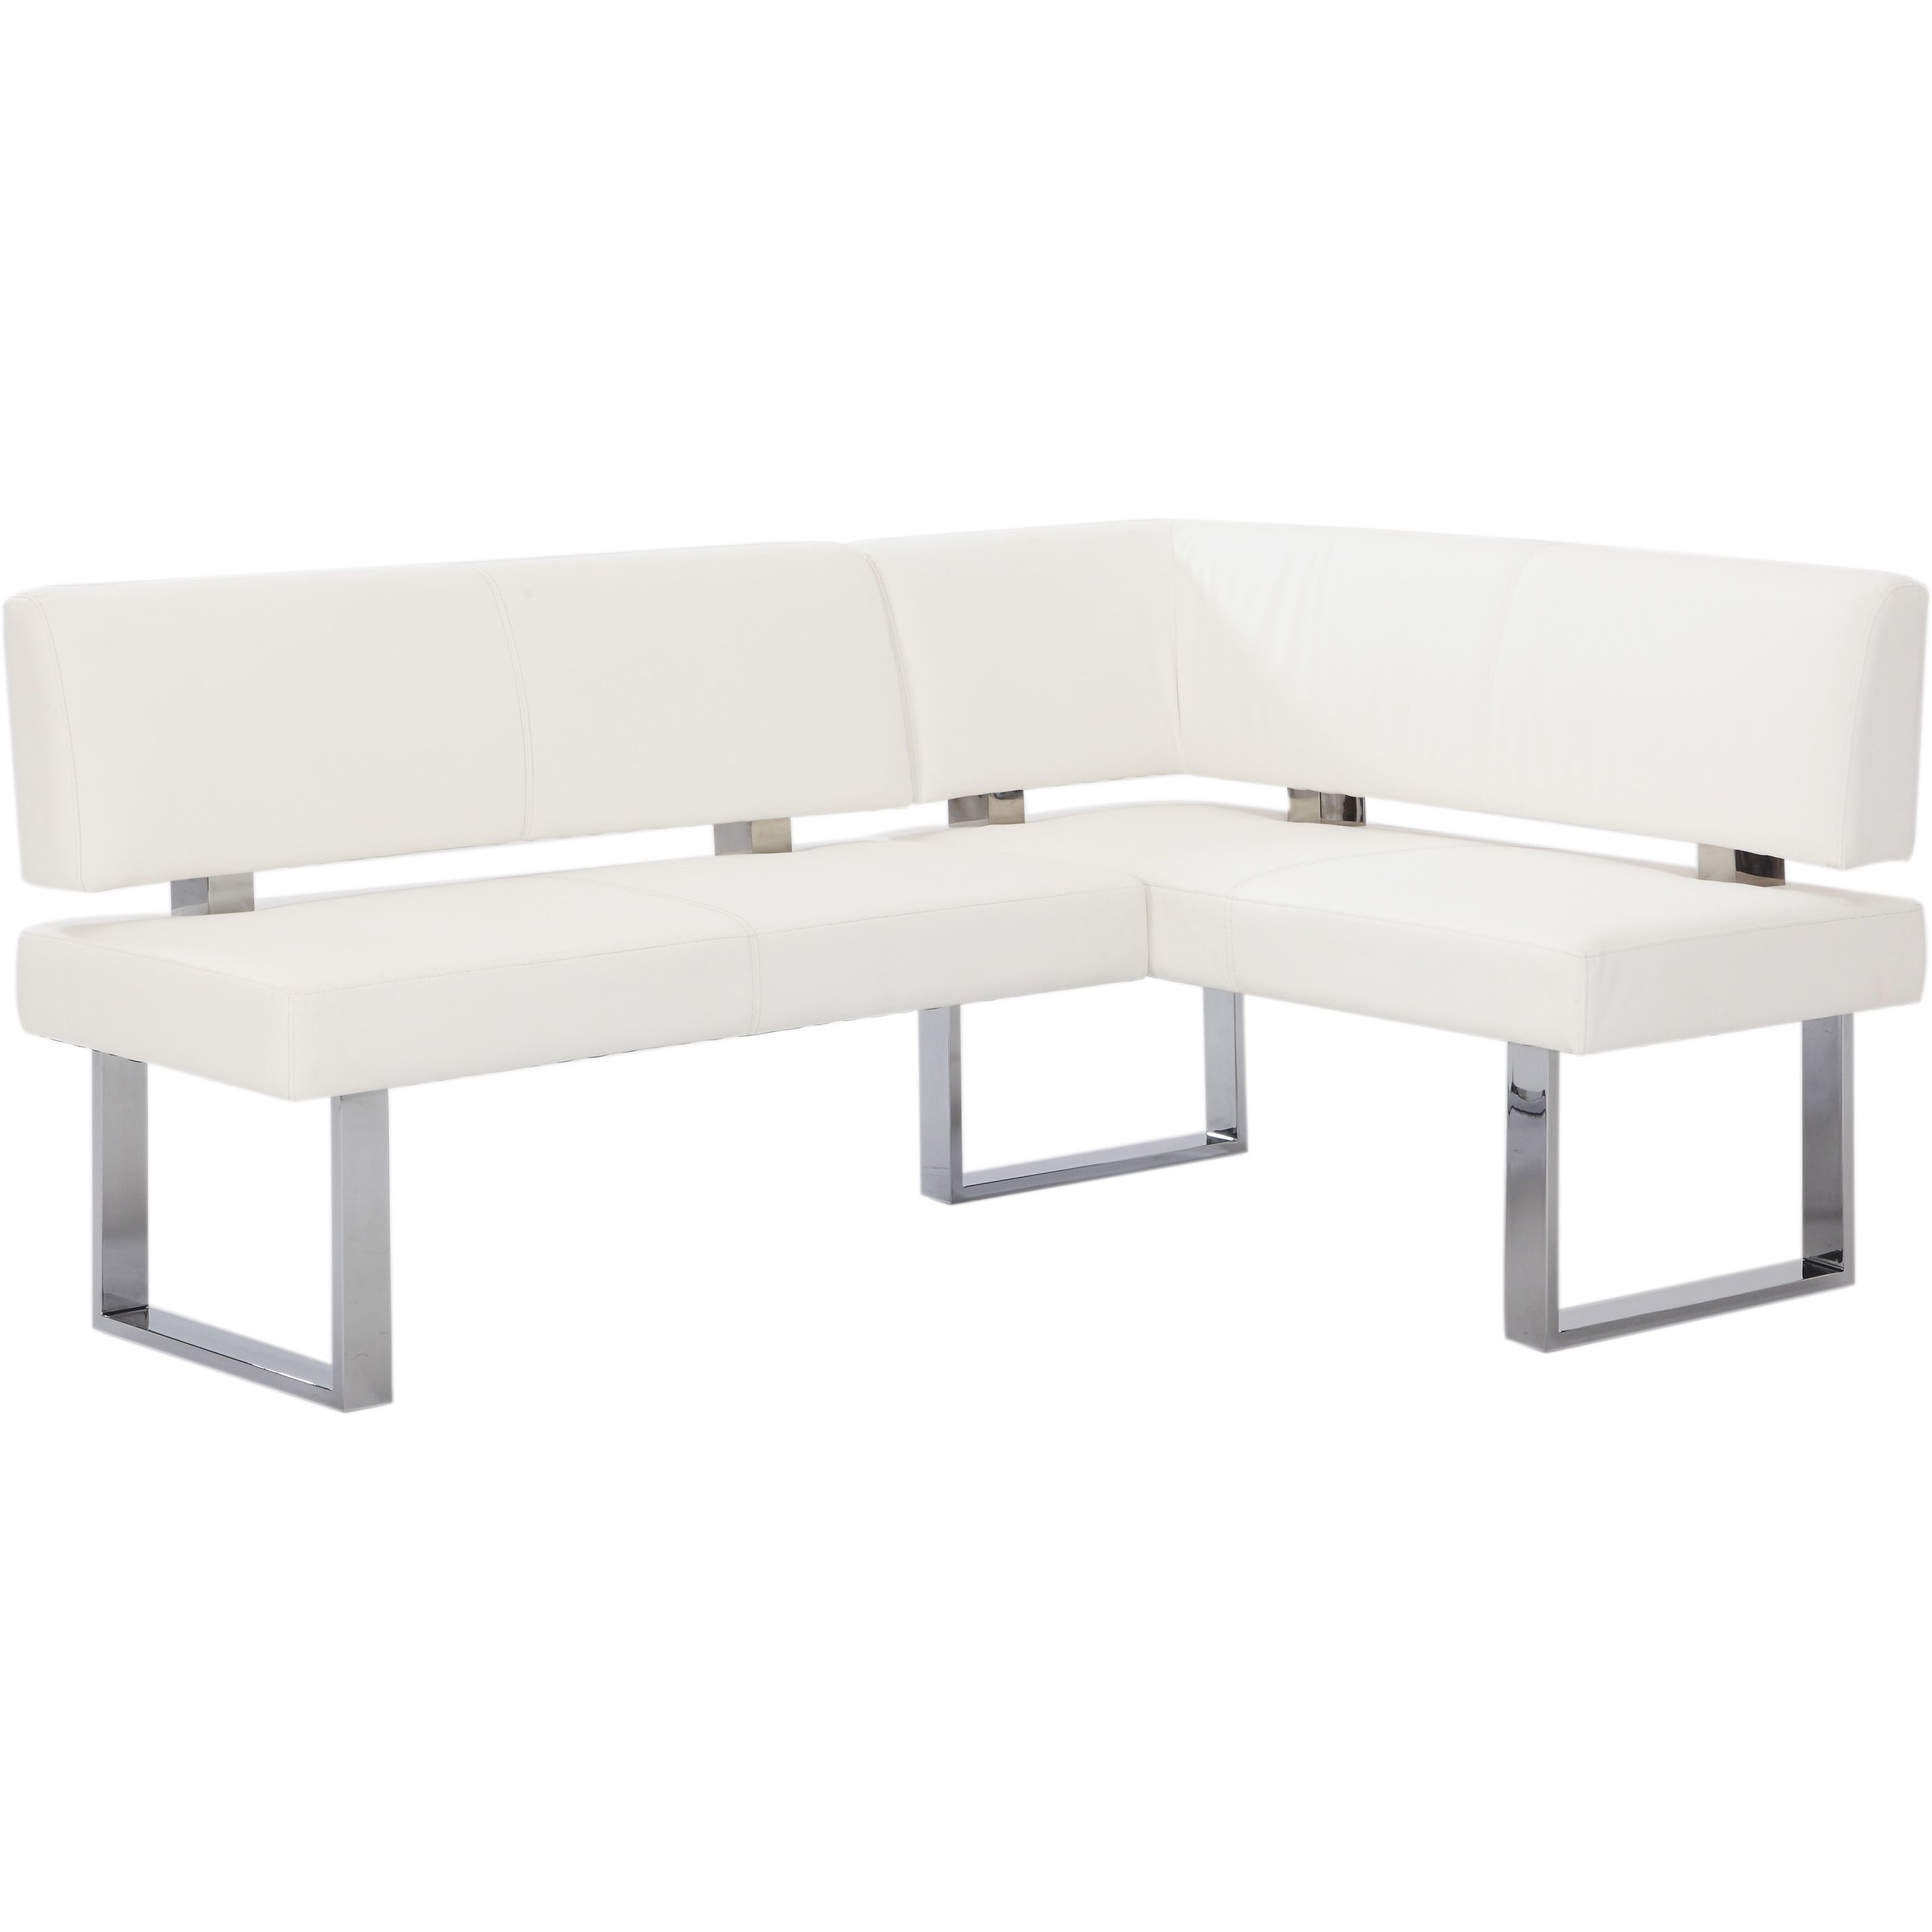 Christopher Knight Home Leah White Nook Corner Dining Bench ...